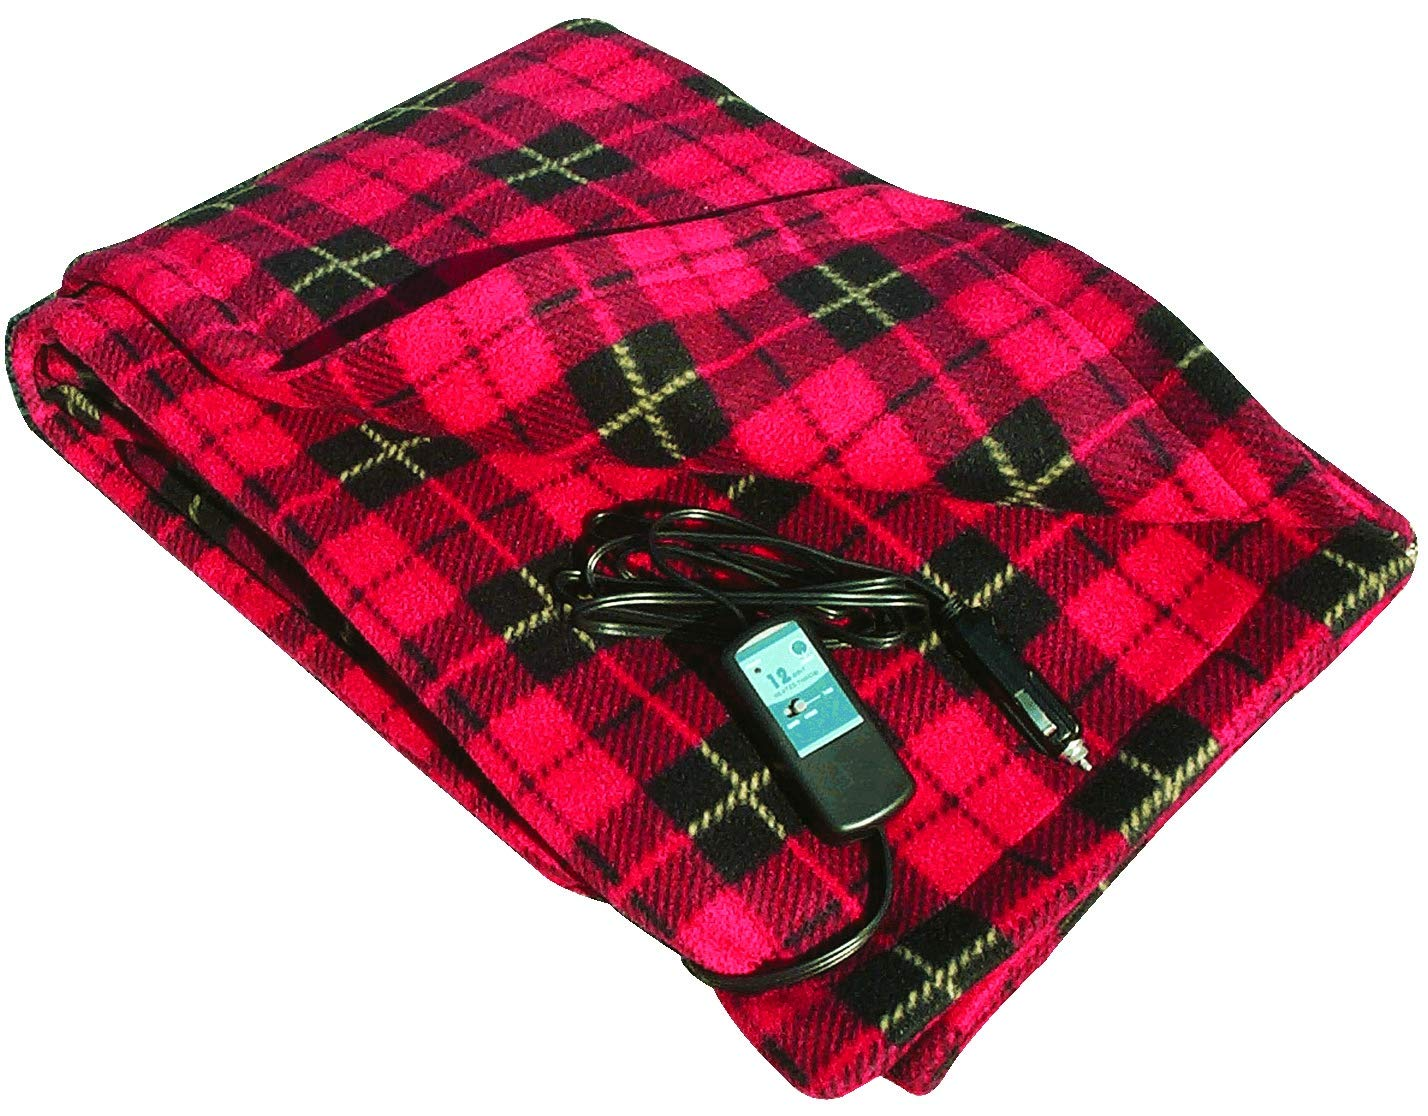 Car Cozy 2 - 12-Volt Heated Travel Blanket (Red Plaid, 58